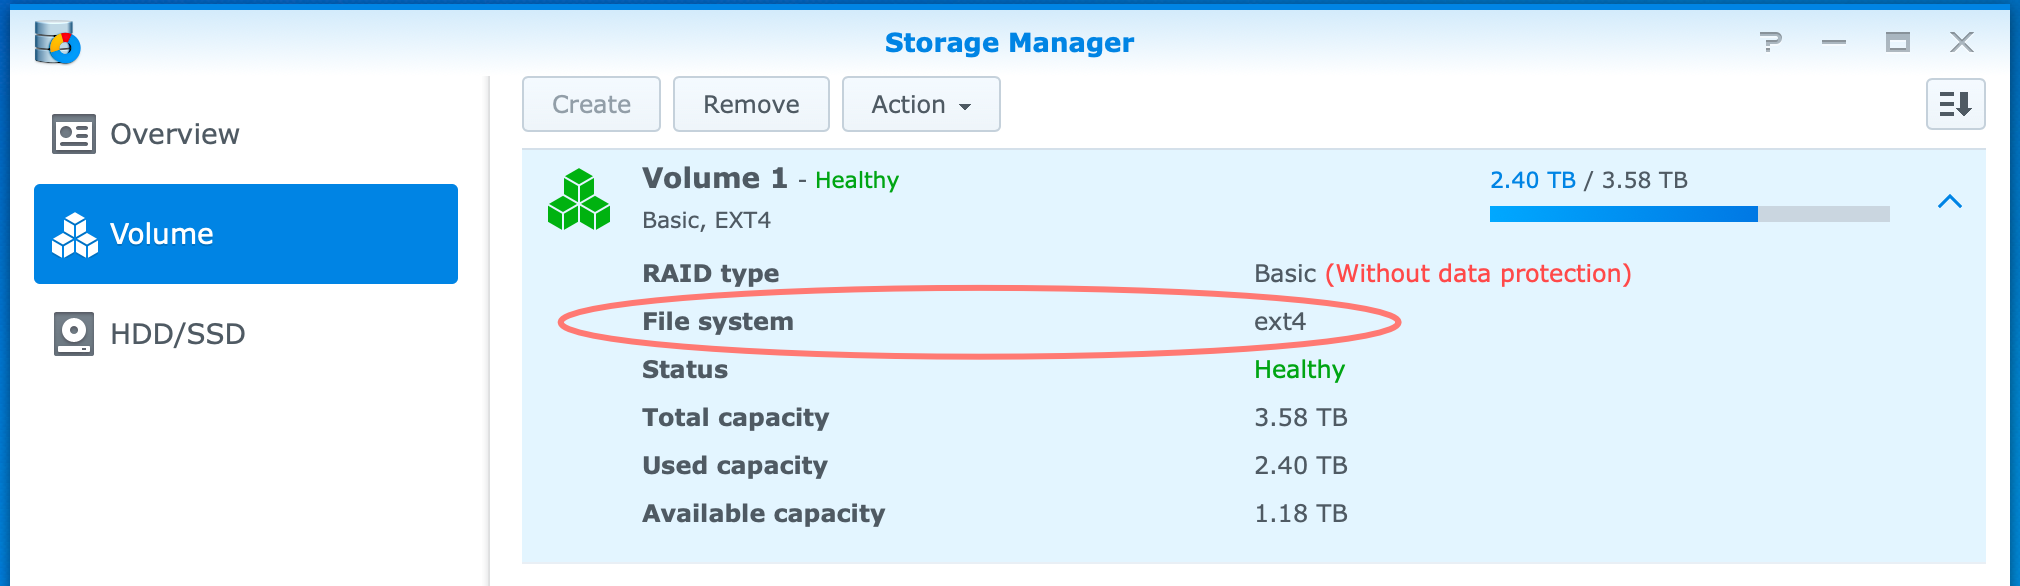 synology, storage manager, ext4, install wordpress on synology